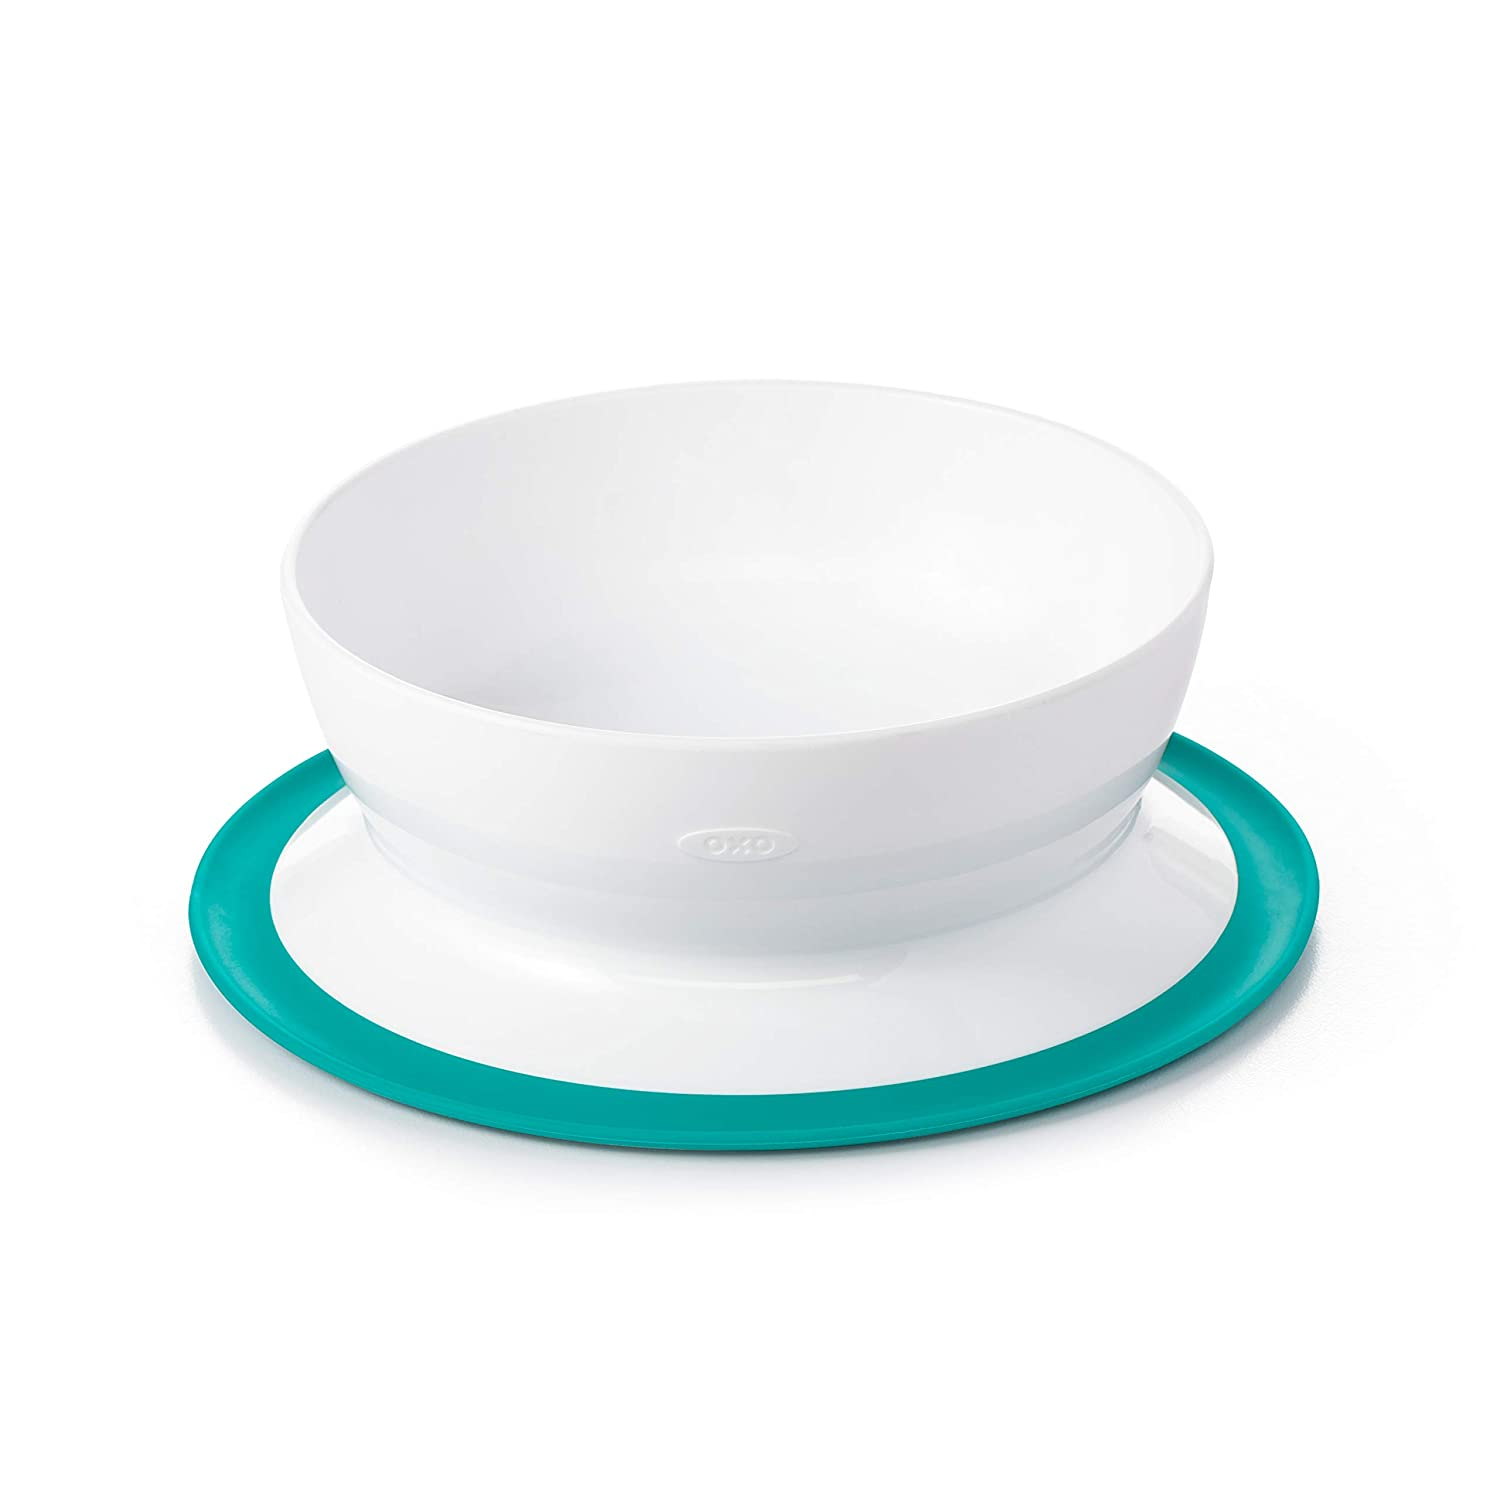 Top 9 Best Baby Bowls and Plates Reviews in 2020 9